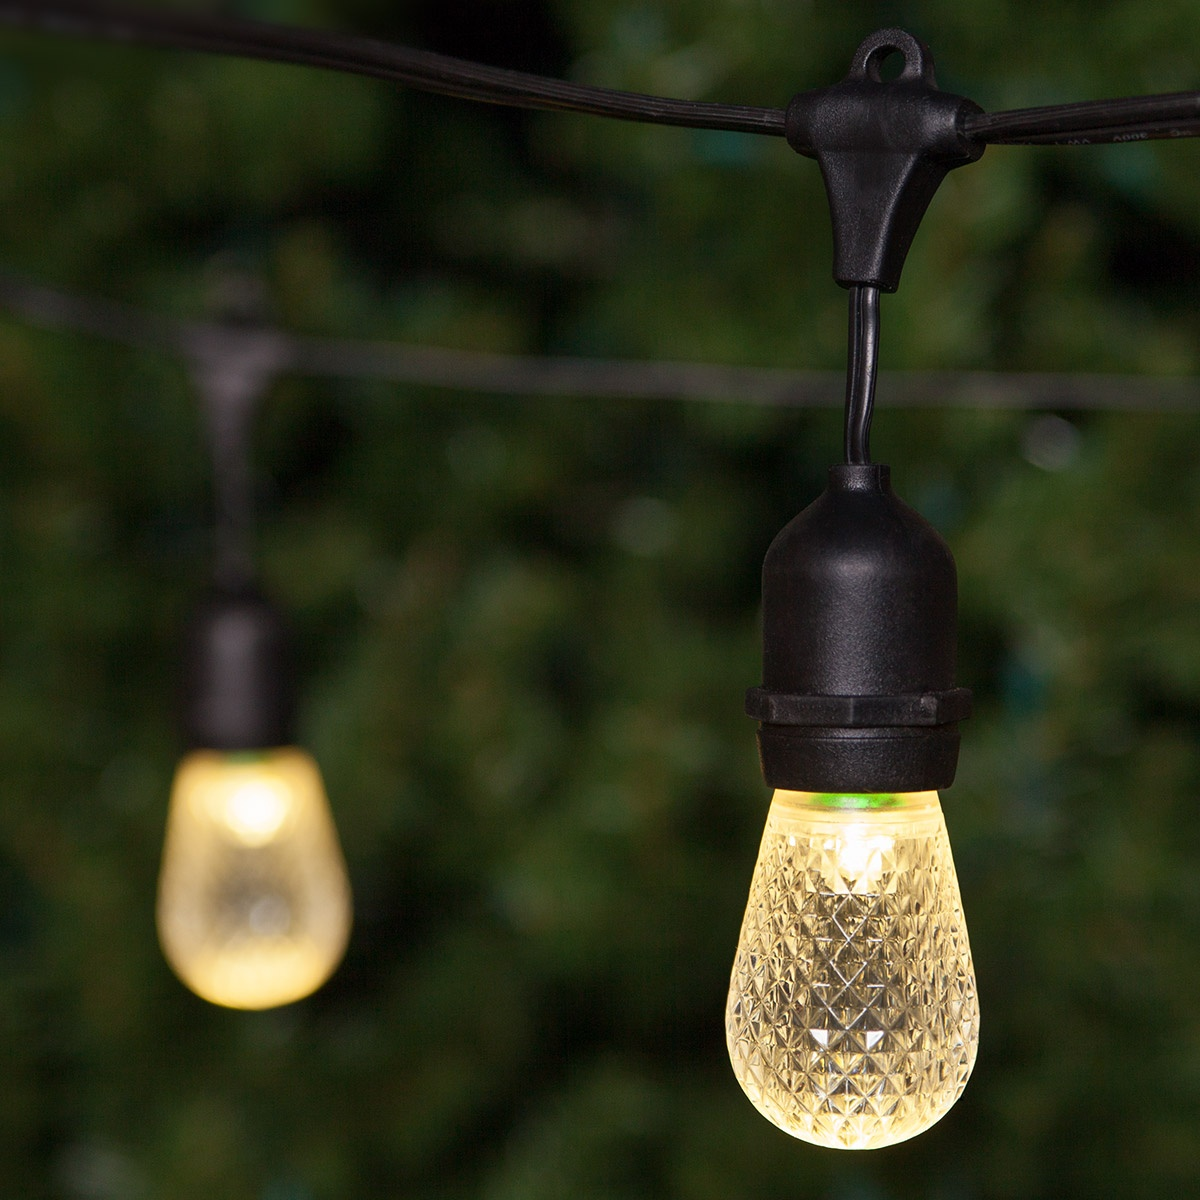 Merveilleux 54u0027 Commercial Patio String With 24 Suspended S14 Warm White LED Outdoor Patio  Lights